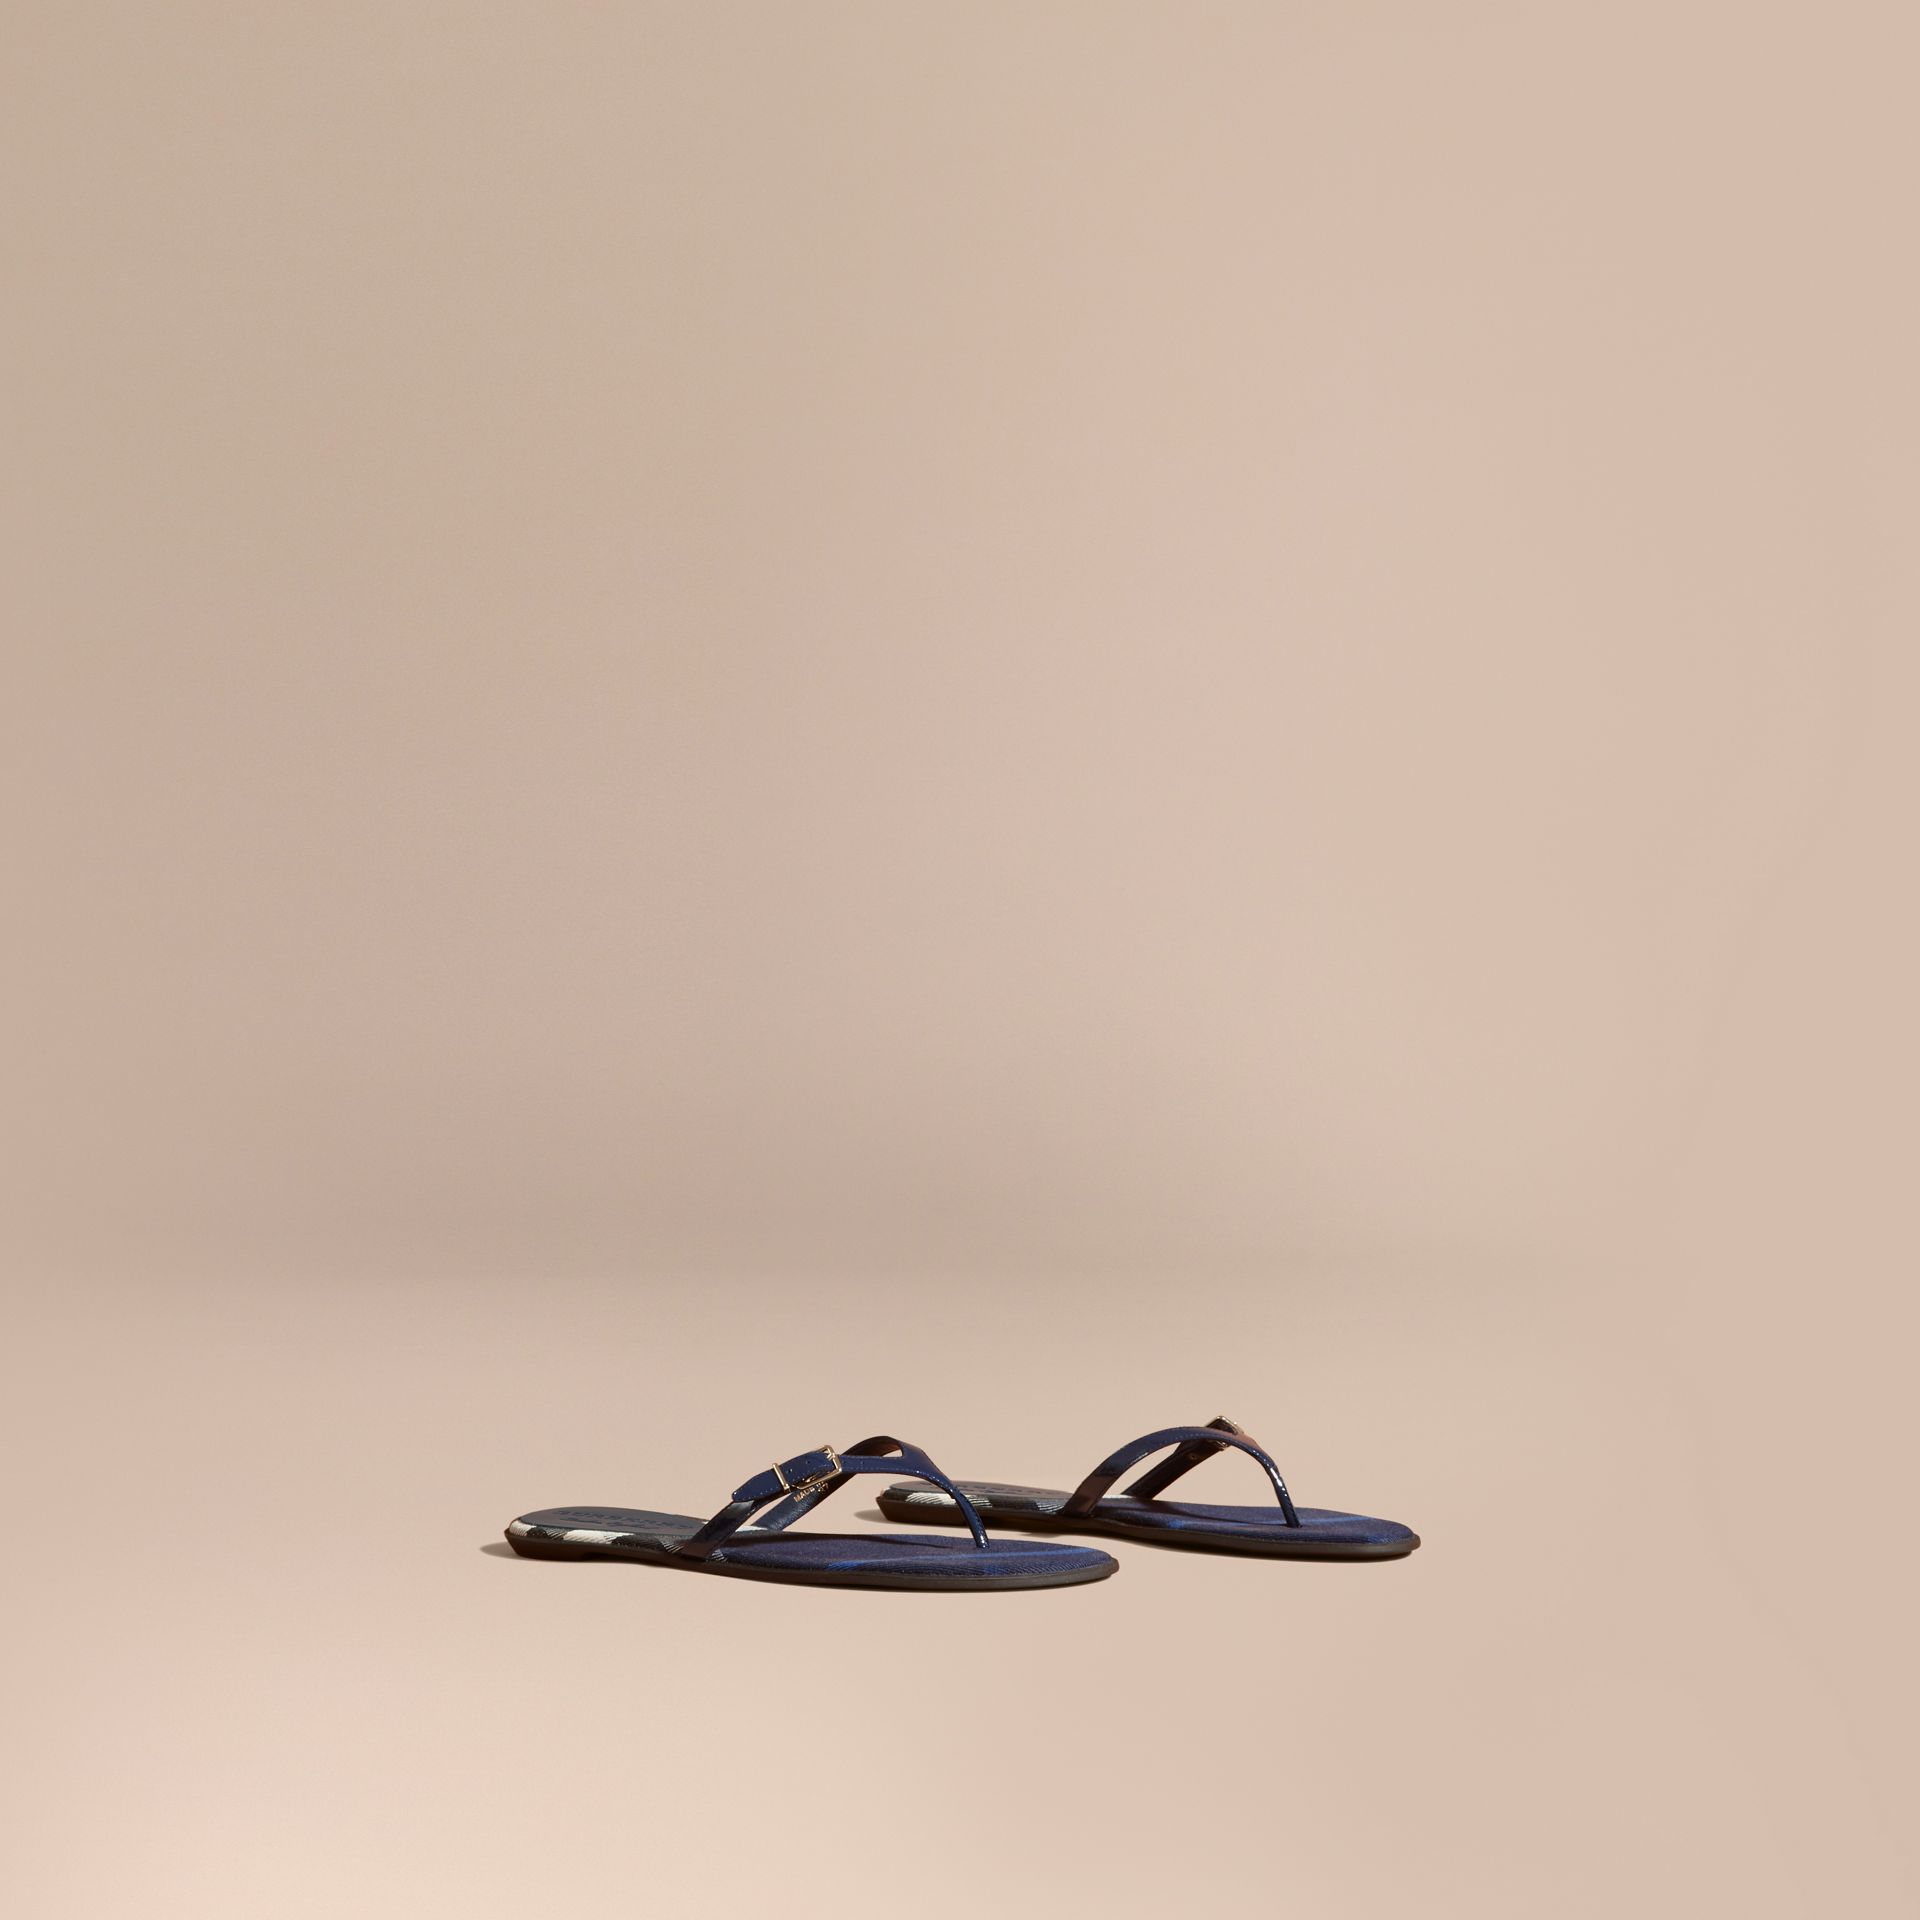 House Check and Patent Leather Sandals in Indigo Blue - Women | Burberry - gallery image 1